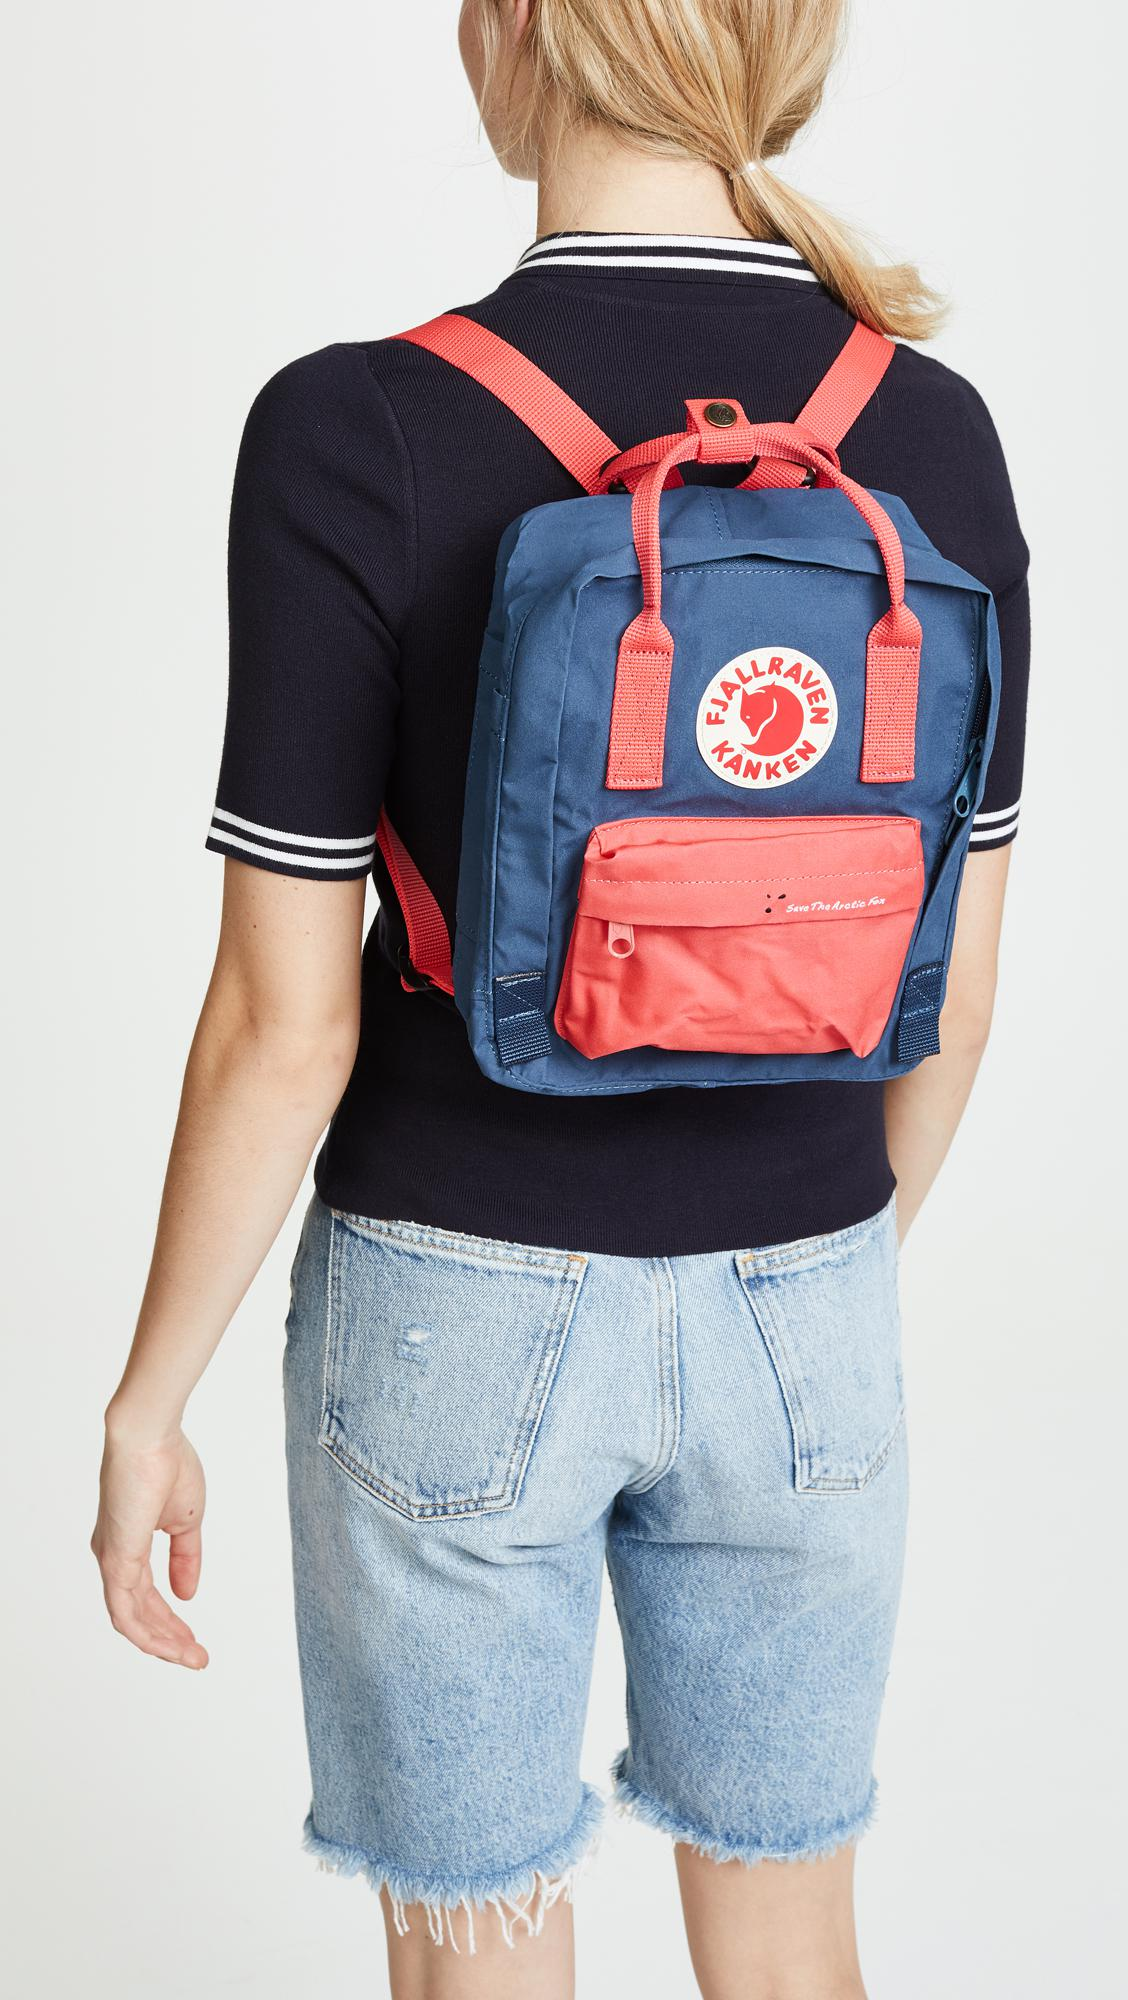 f22356cdf01 Fjallraven Save The Arctic Fox Kanken Mini Backpack in Blue - Lyst